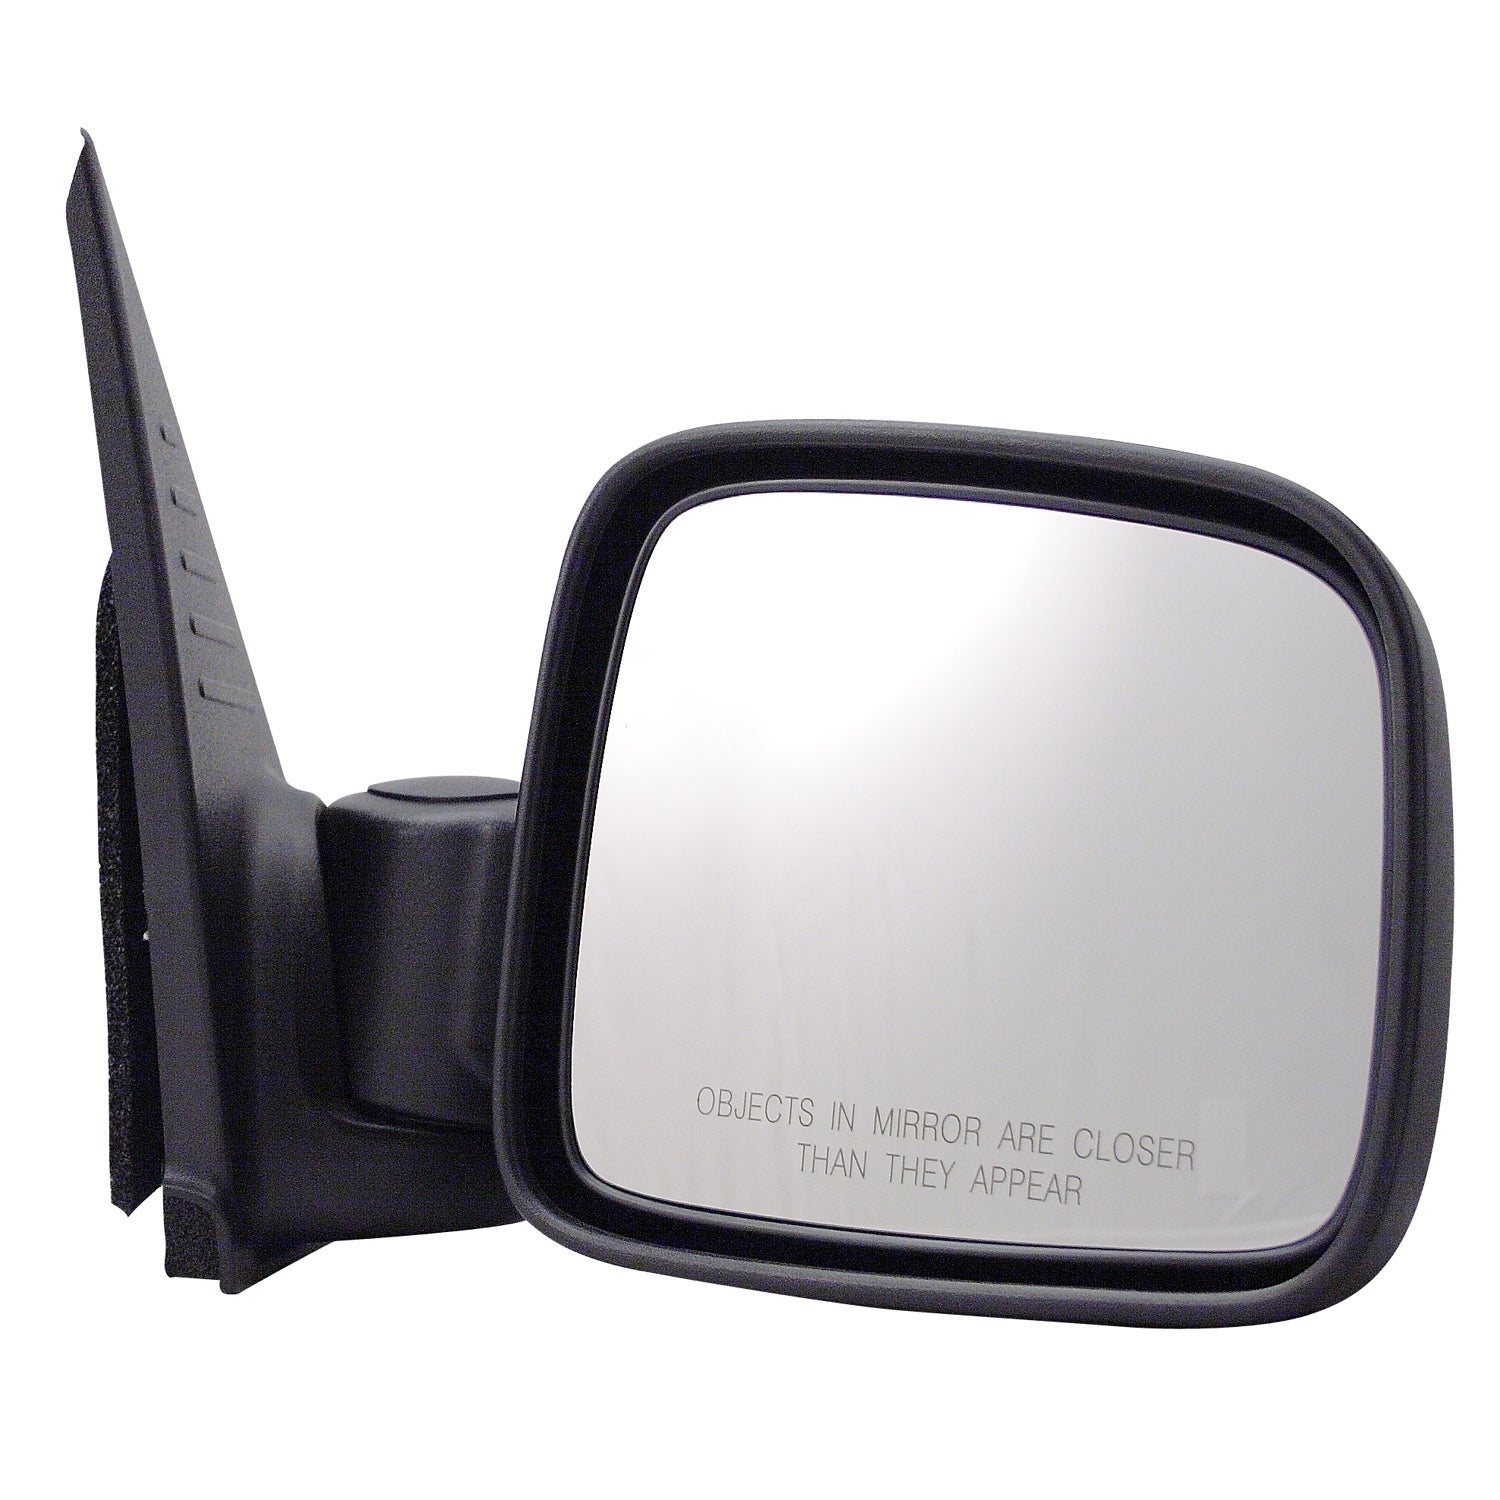 Foldaway For Jeep Liberty 02-07 Driver Side Power View Mirror Non-Heated